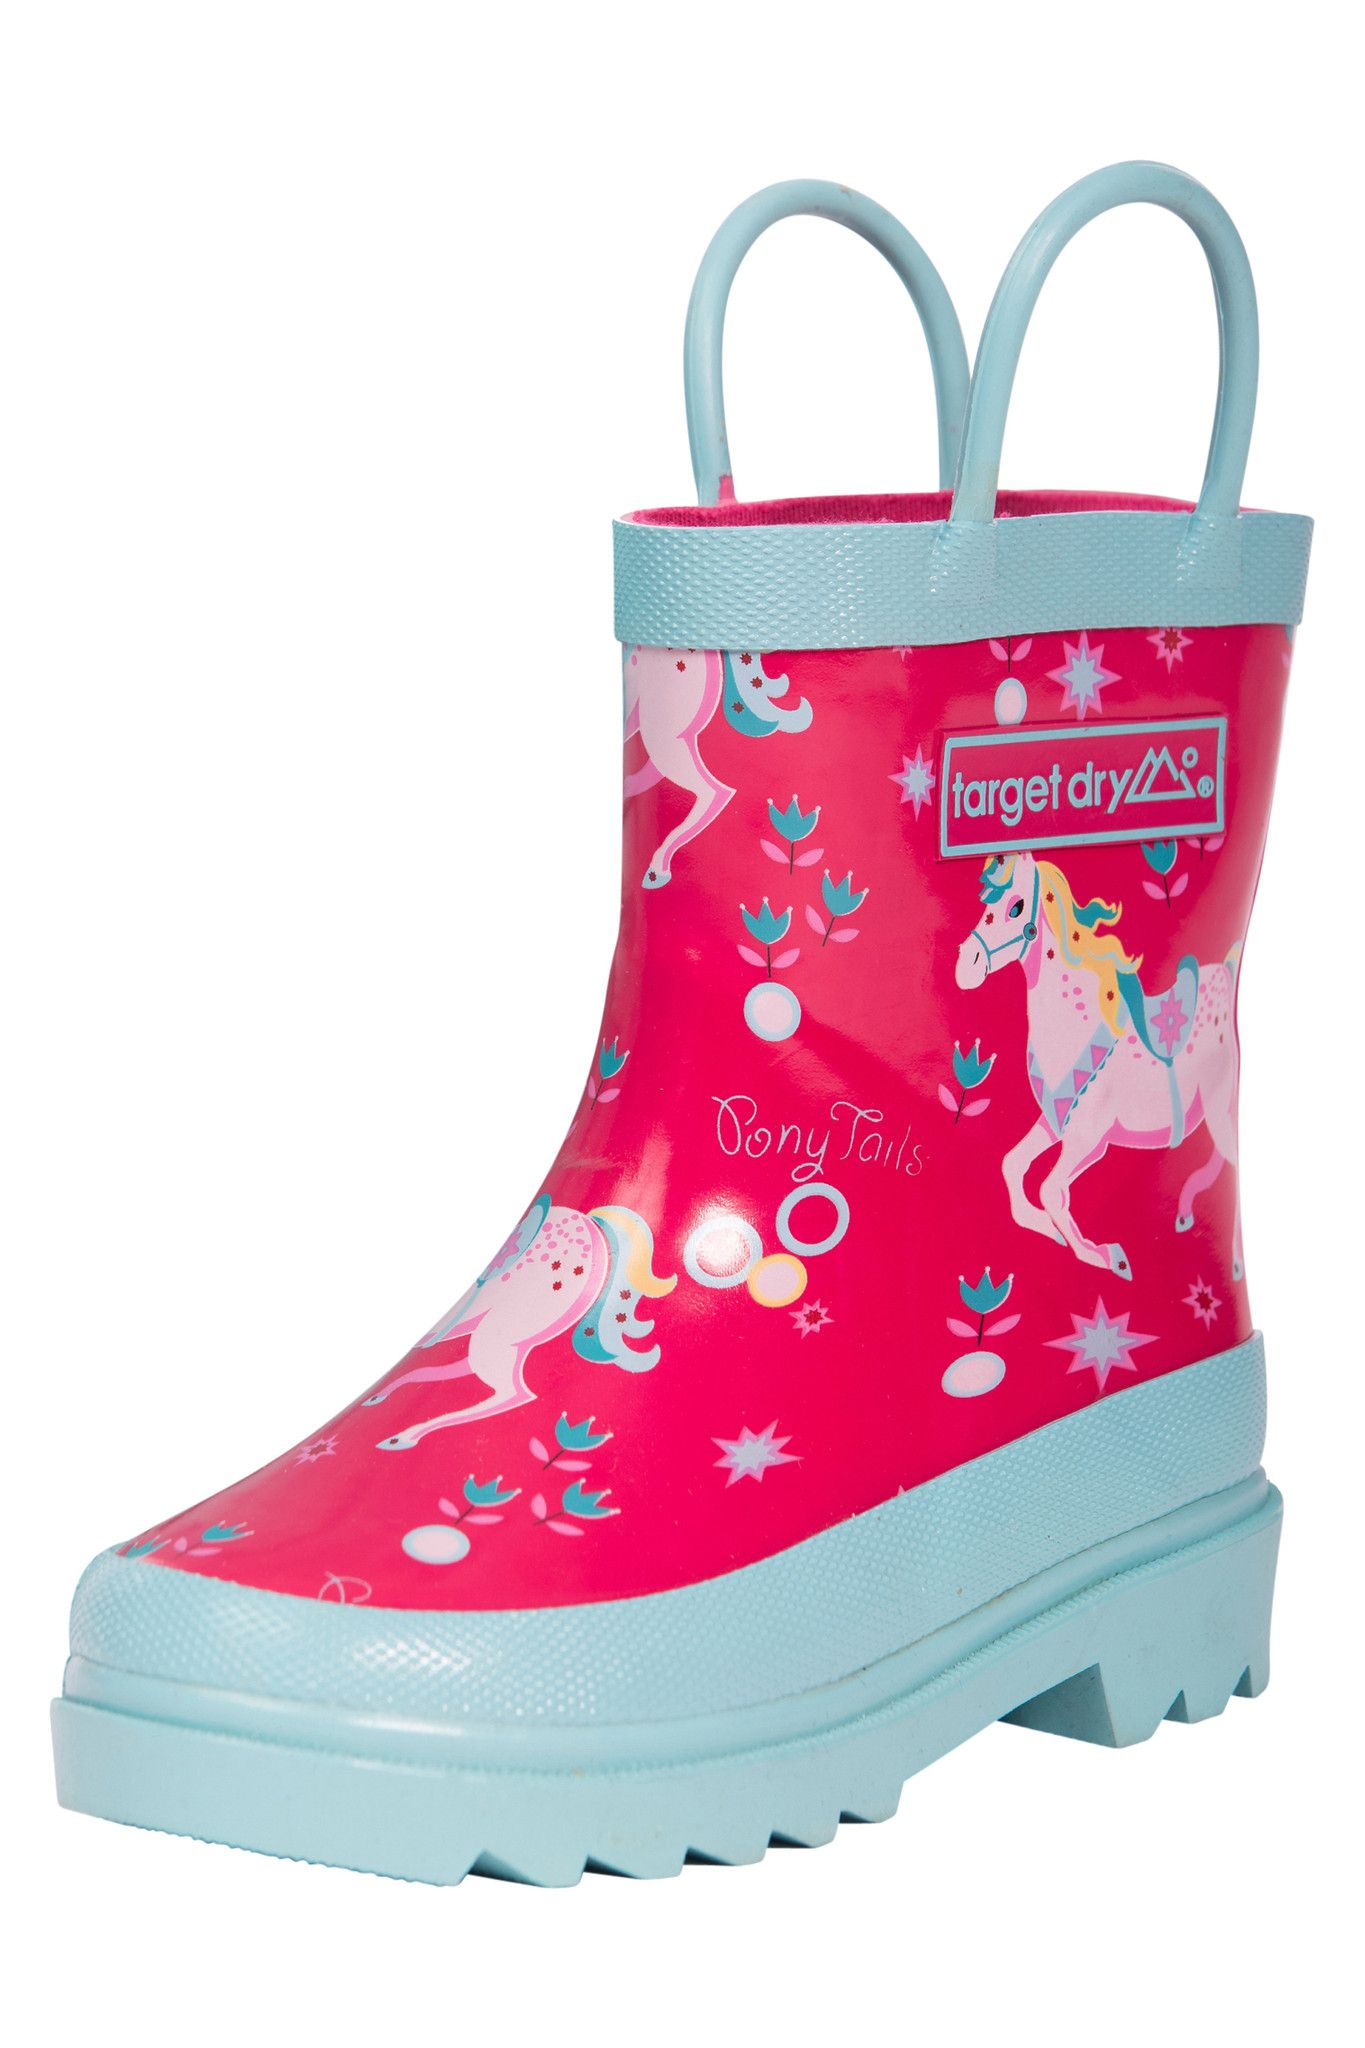 ... Target Dry Evie Girls Printed Rubber Welly Boots, Rose Pony ...